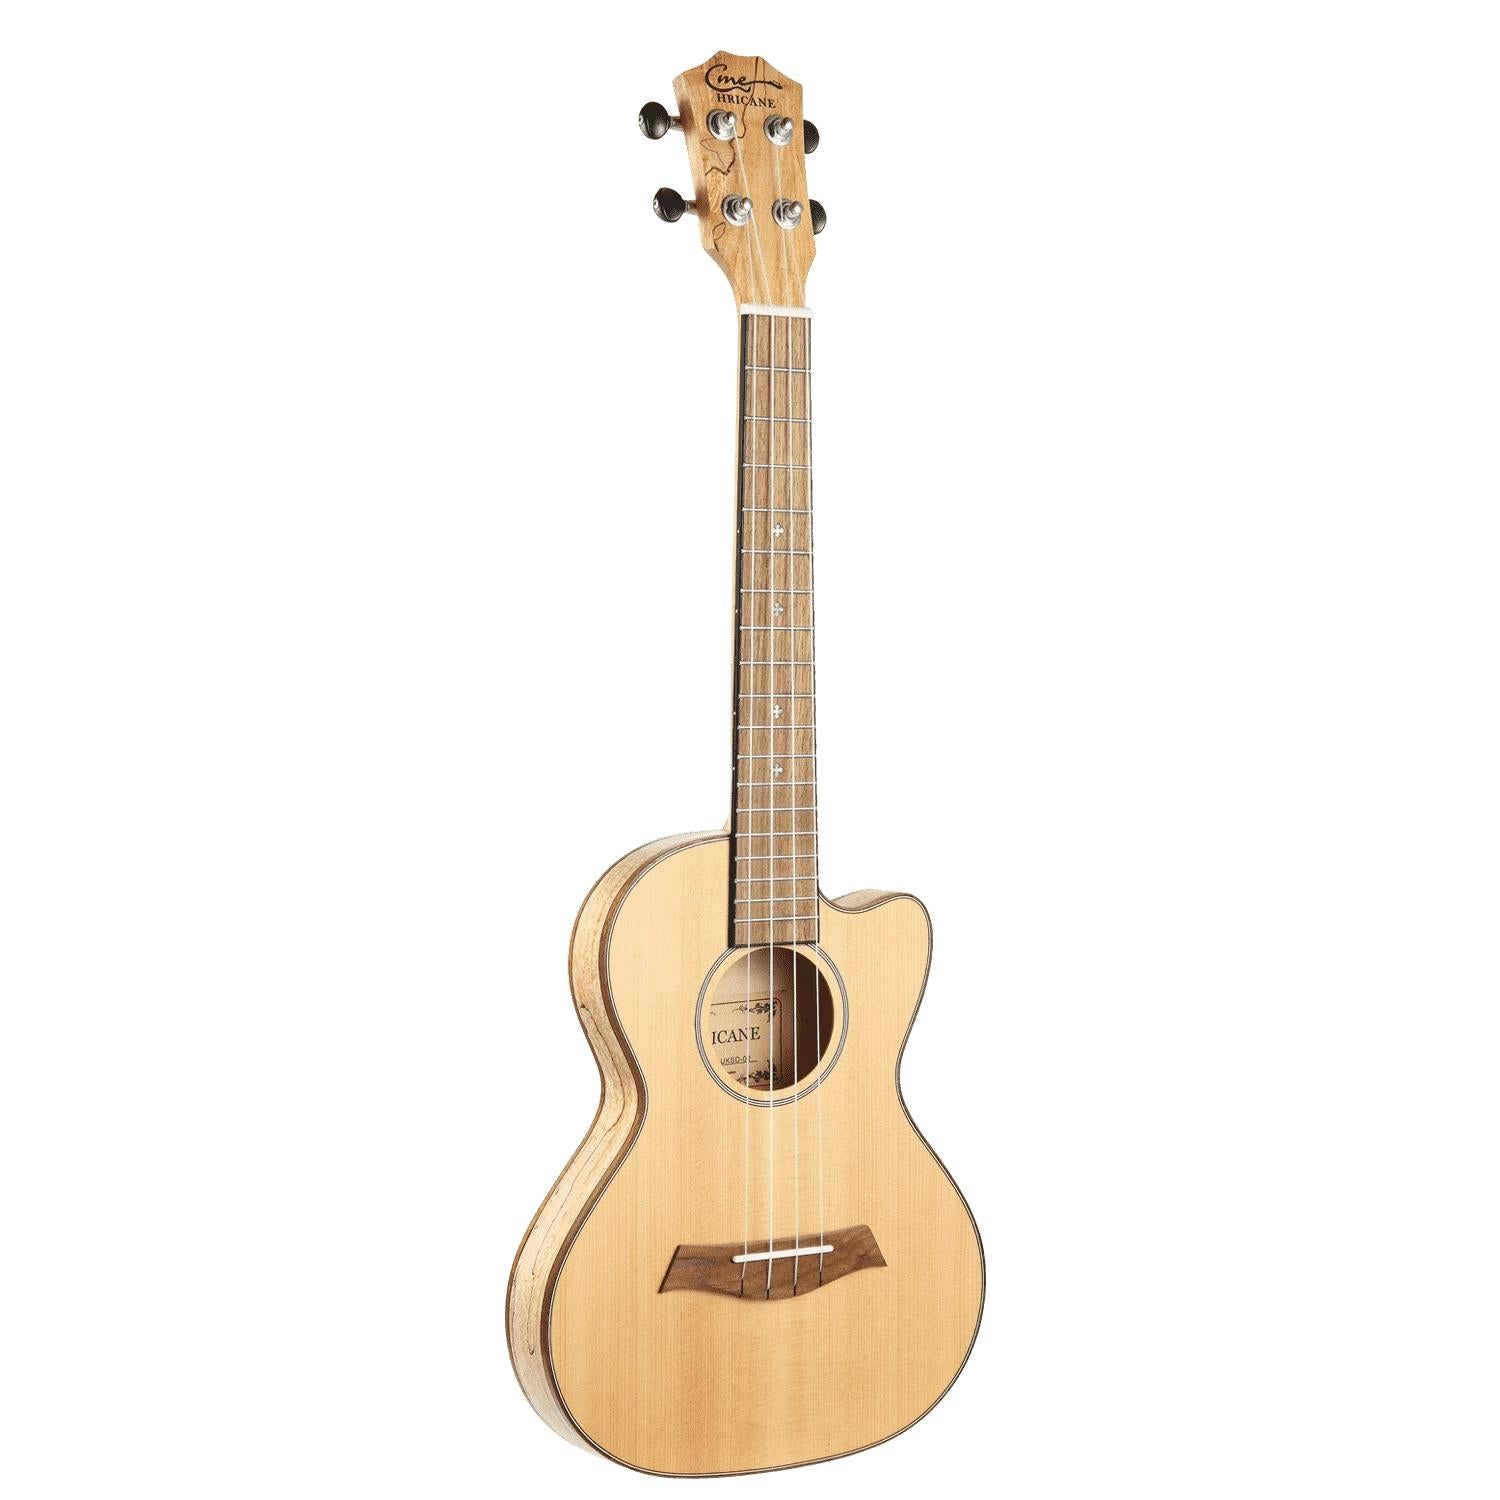 HRICANE solid spalted maple wood tenor size ultra slim ukulele for travel